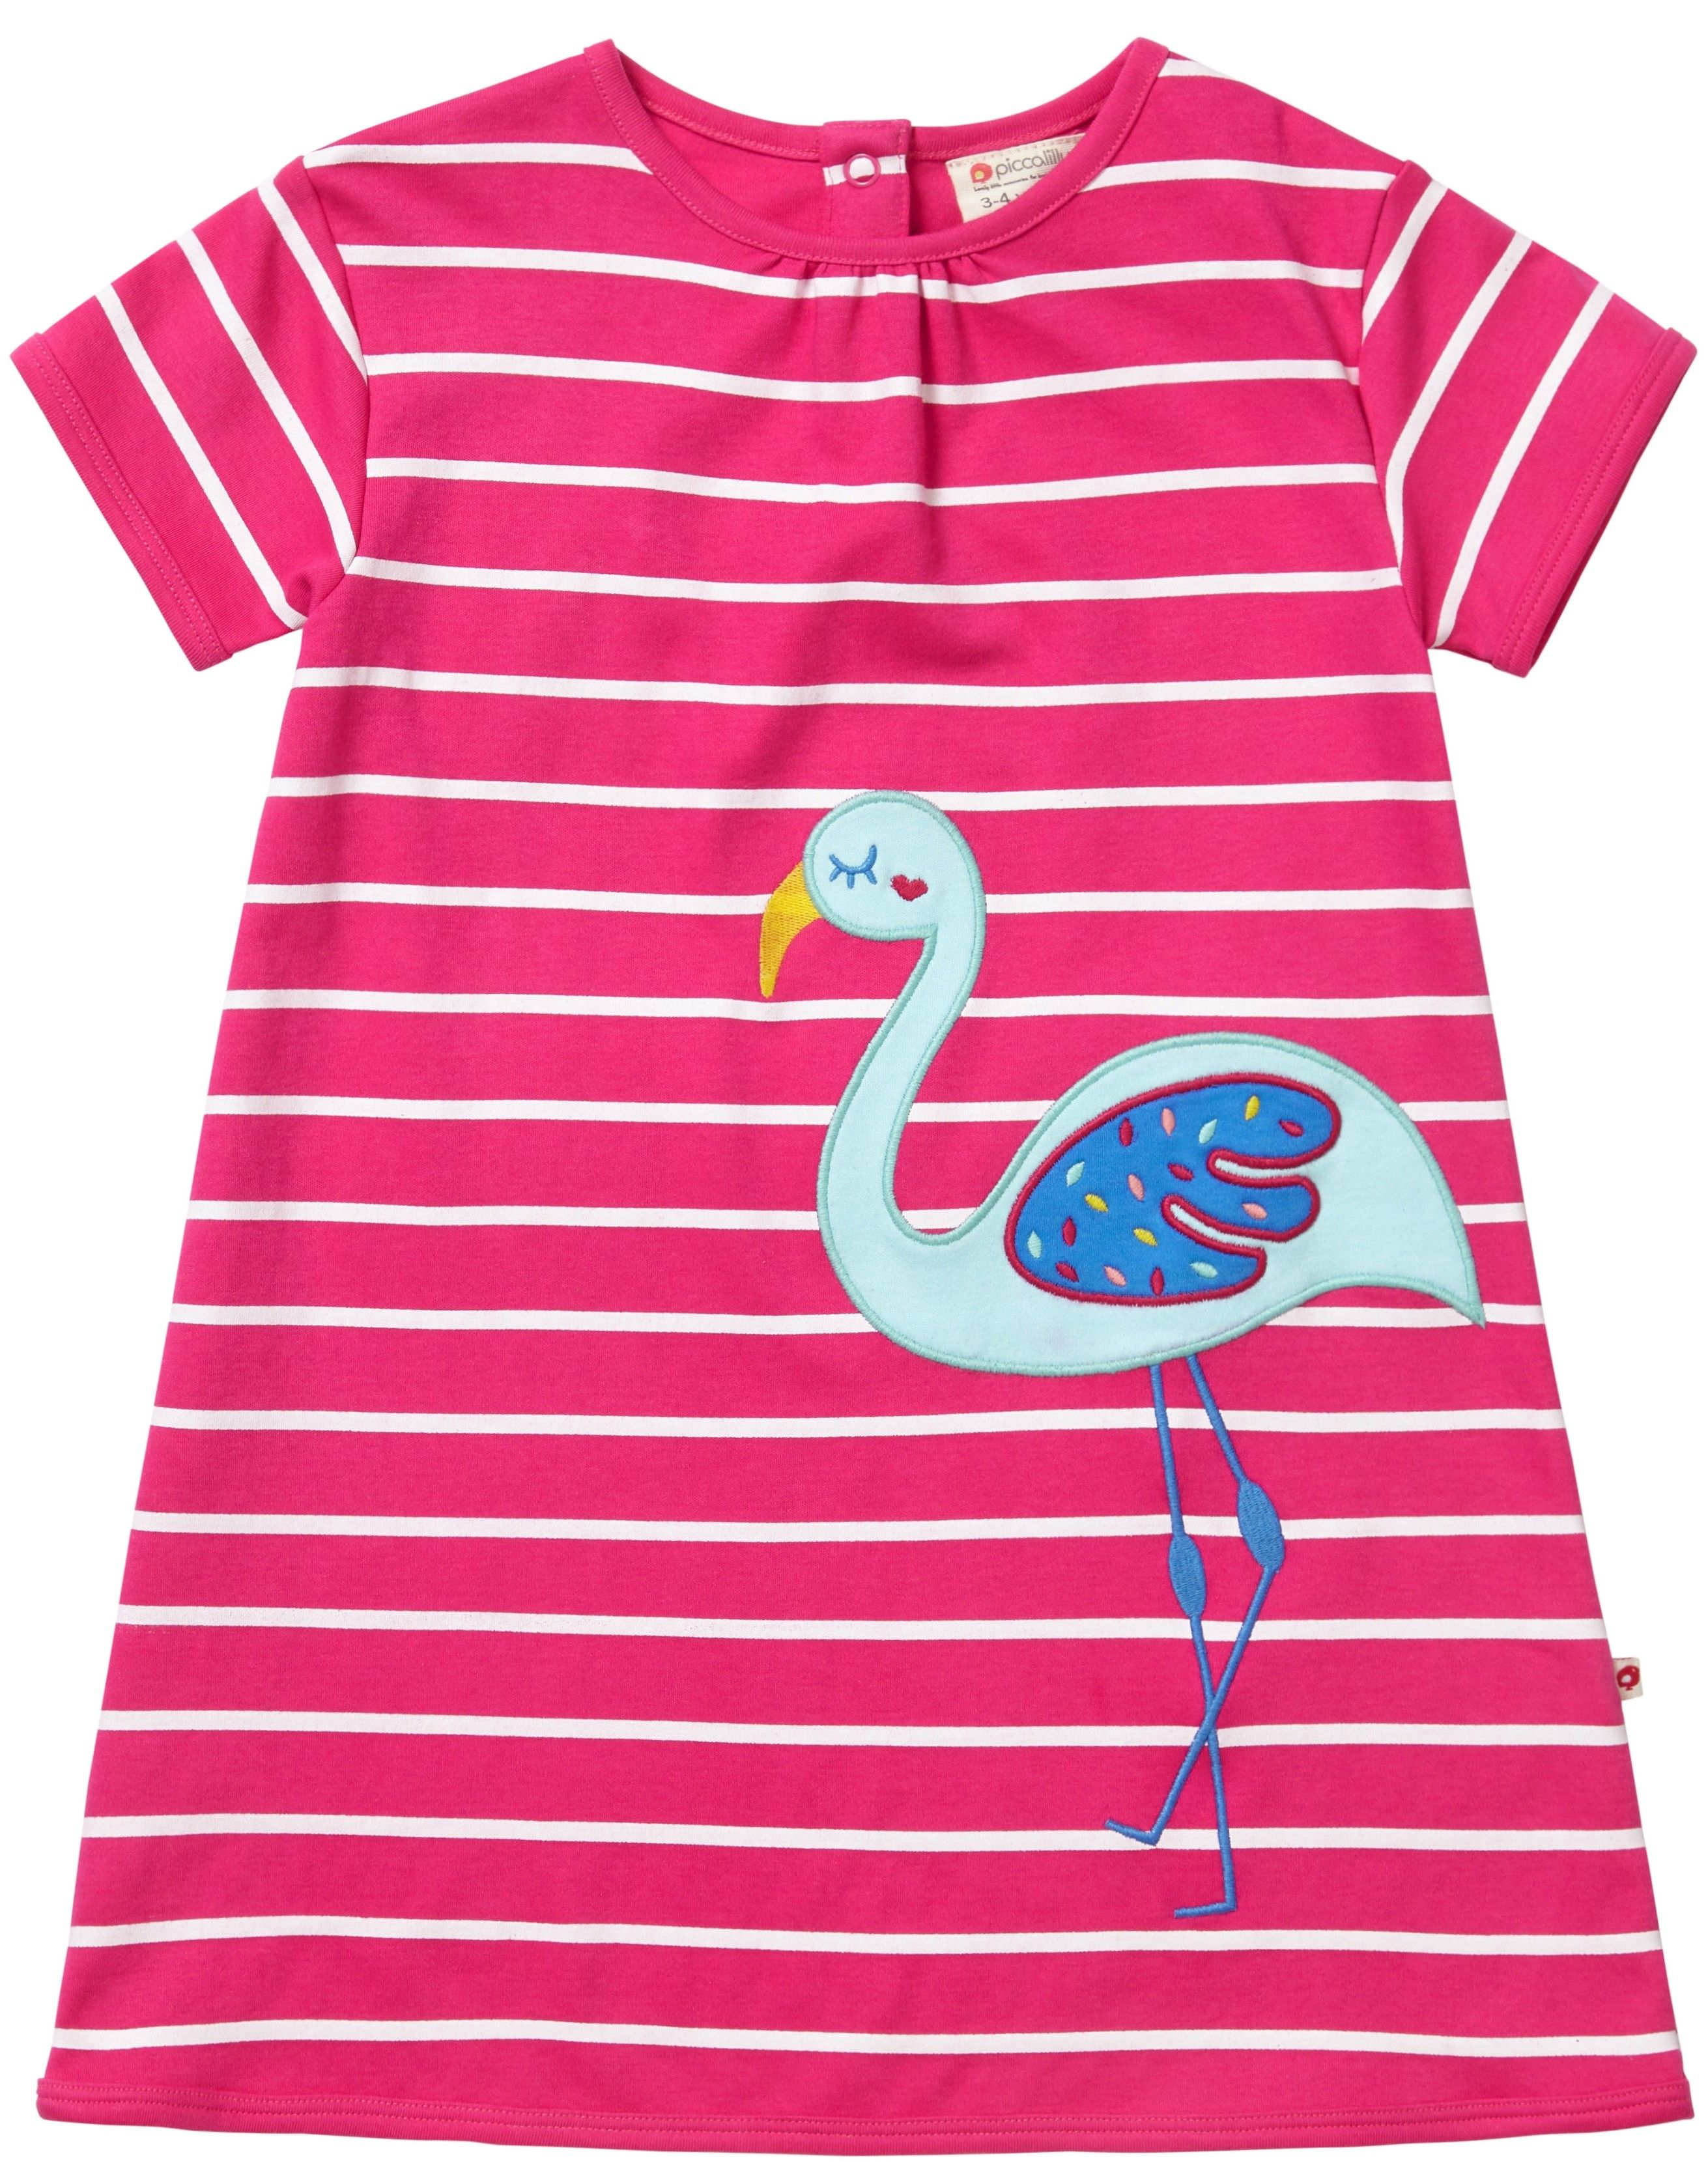 Blue Rainforest Print Piccalilly Baby Dress with Integrated Bodysuit Organic Cotton Soft Jersey